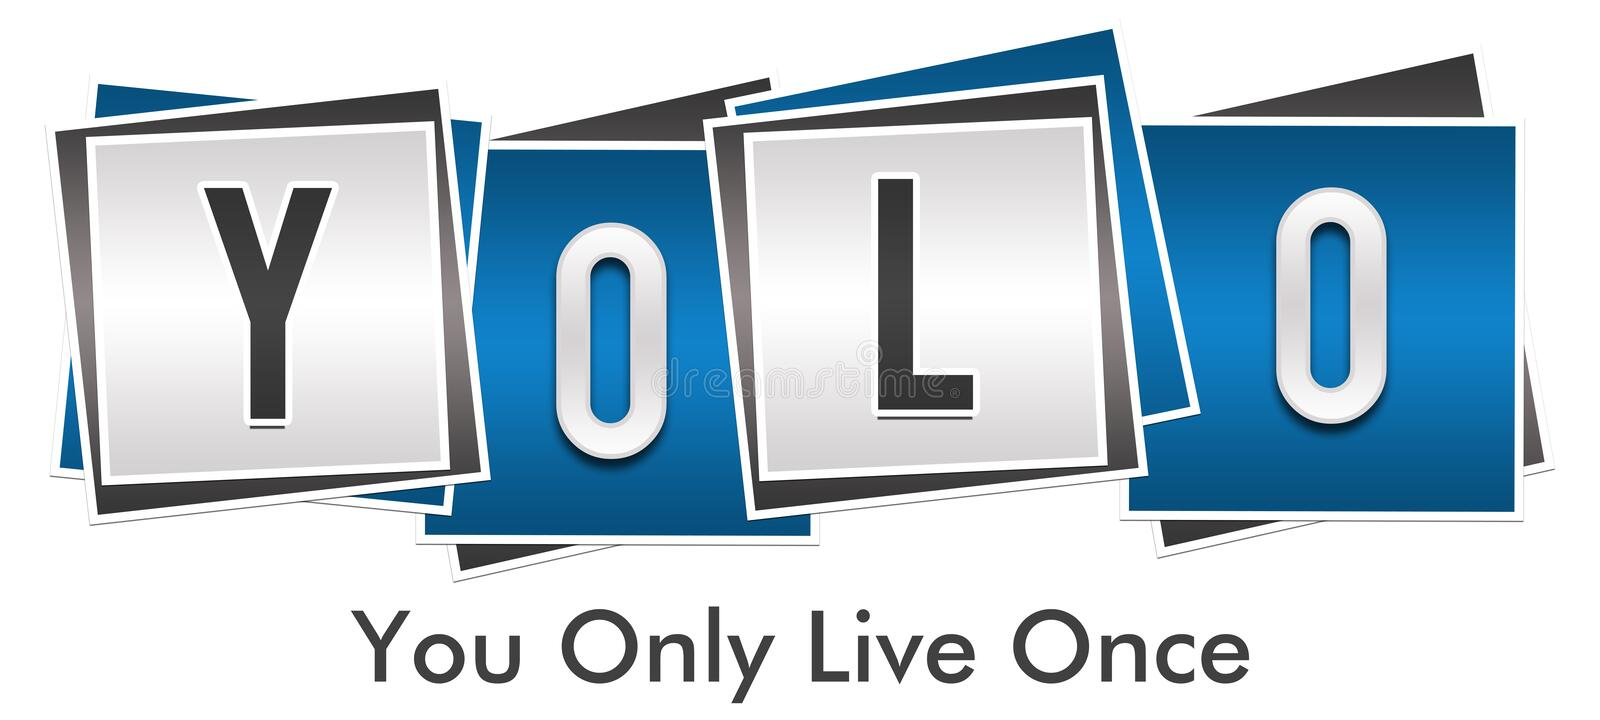 YOLO - Usted solamente Live Once Blue Grey Blocks libre illustration